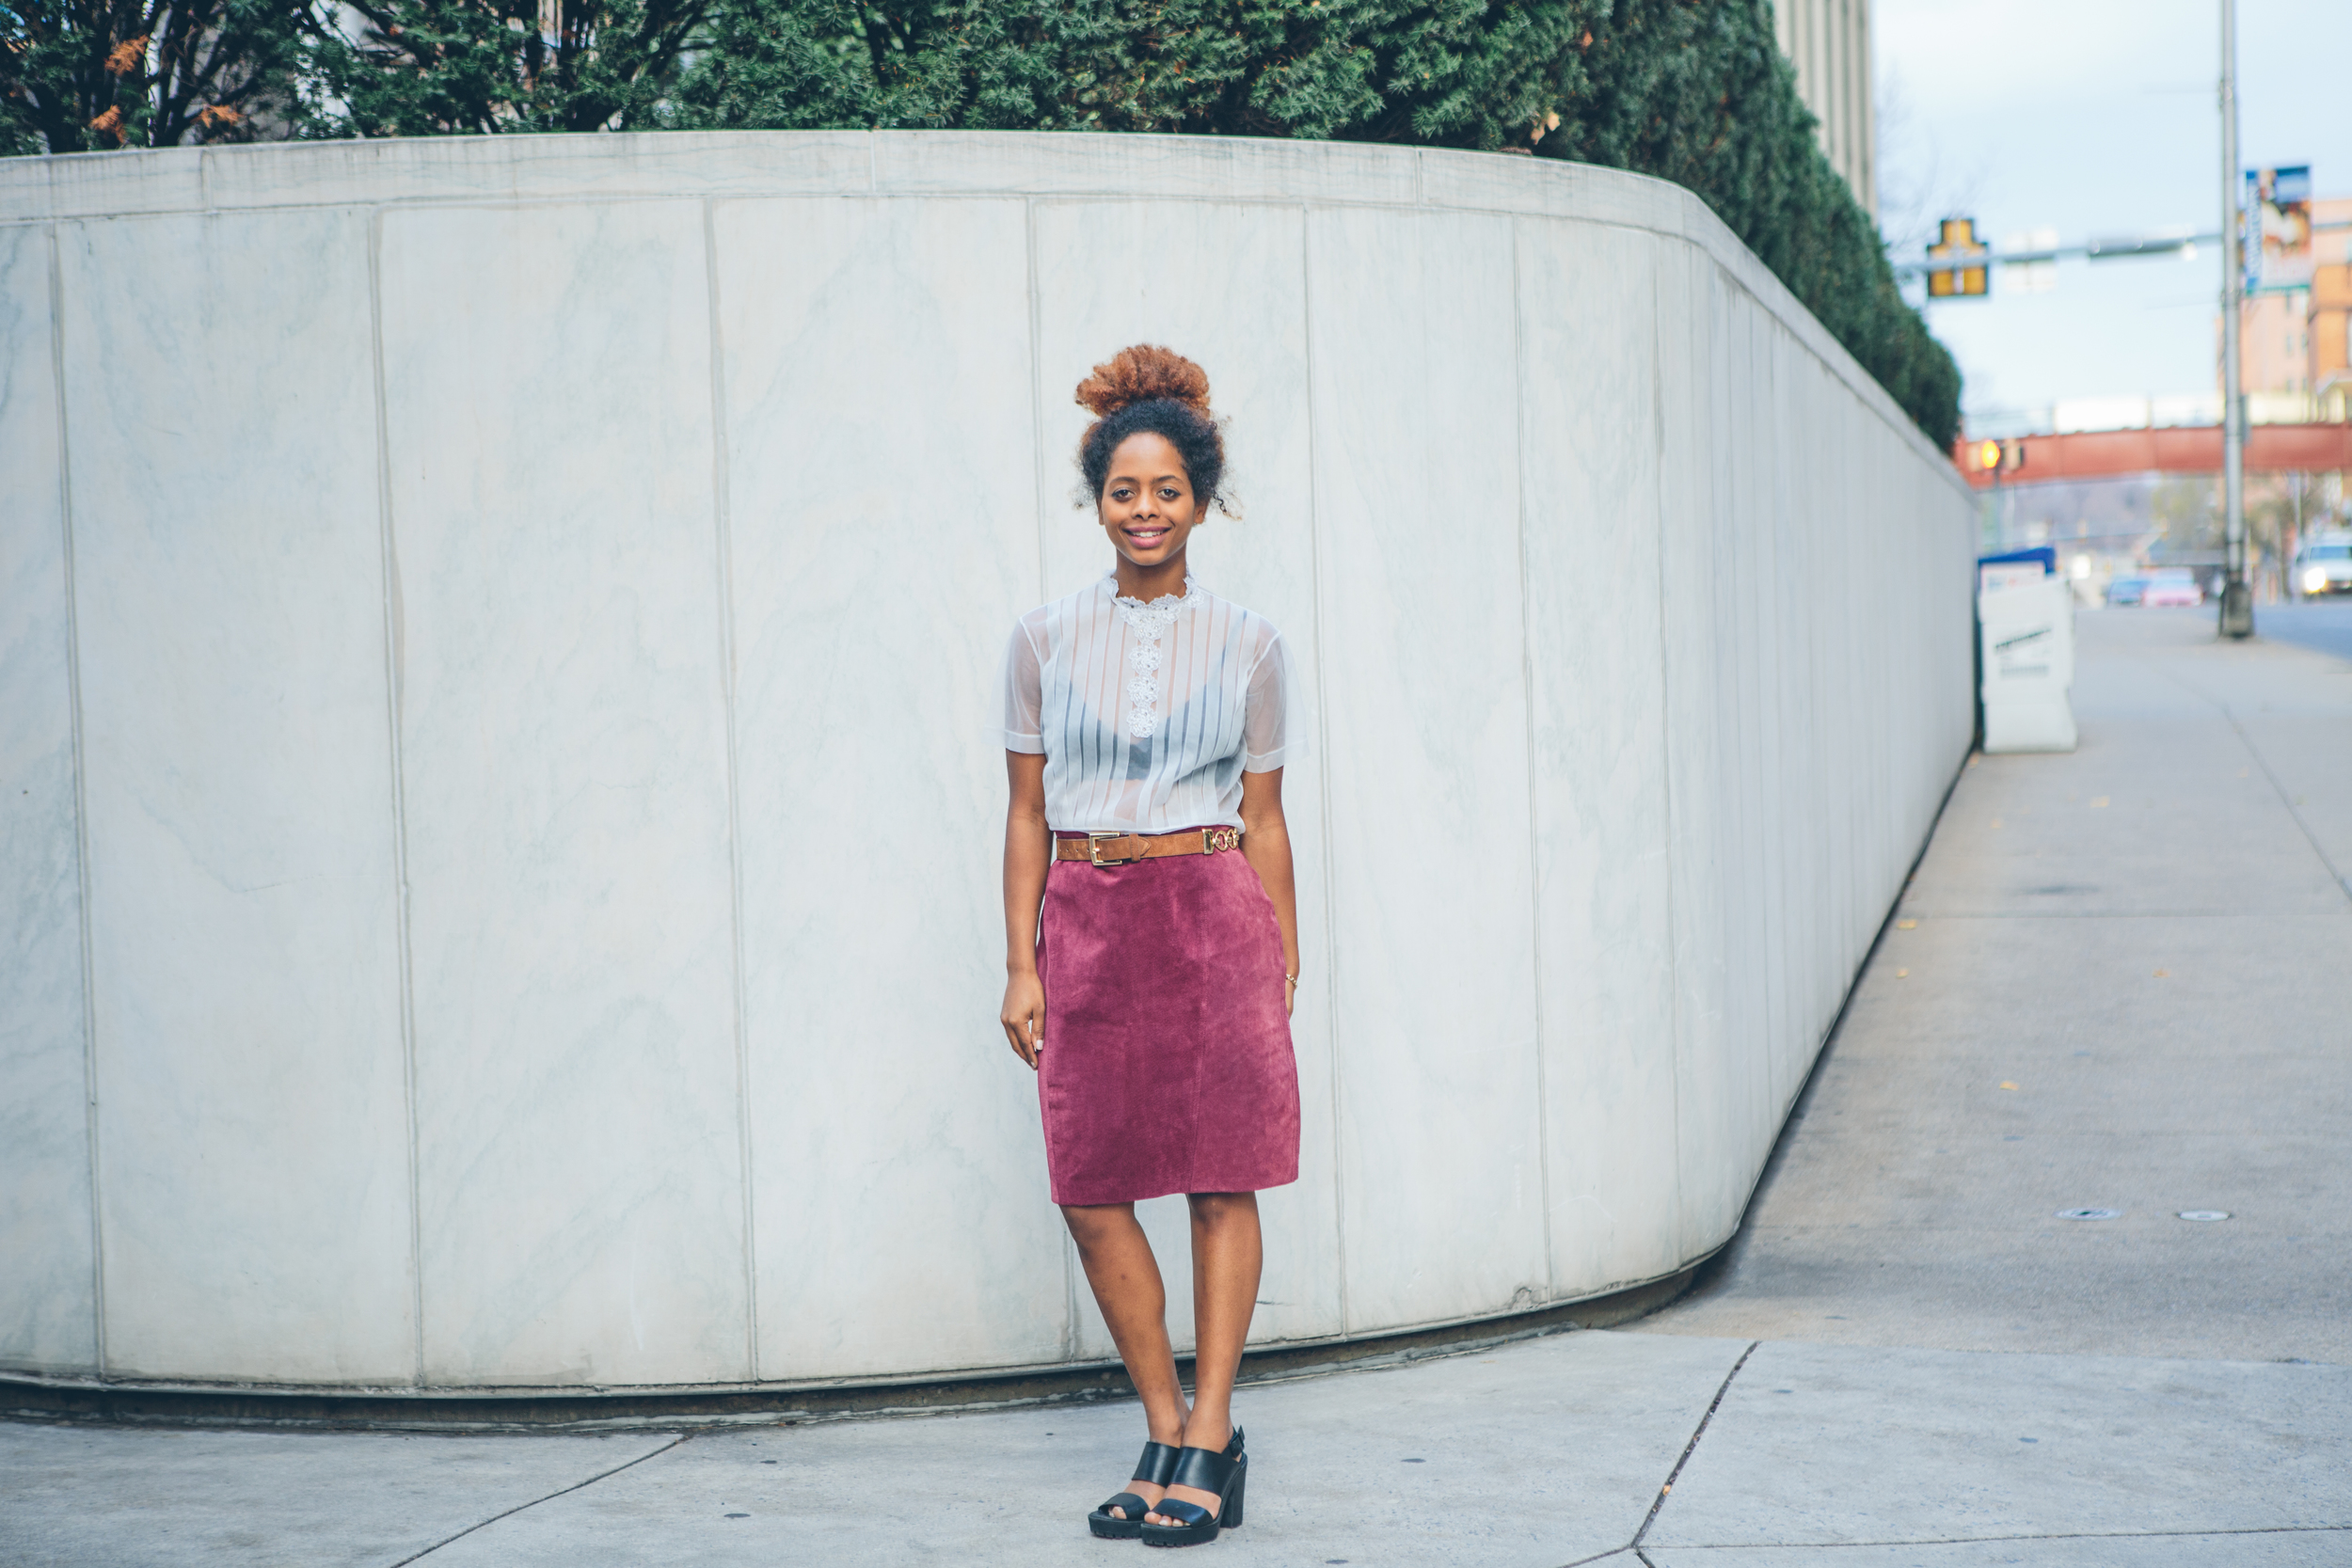 Maroon suede pencil skirt ($36) |  sheer antique blouse with sparkling embellishments ($28) | 90s Express suede and gold chain link belt ($20)